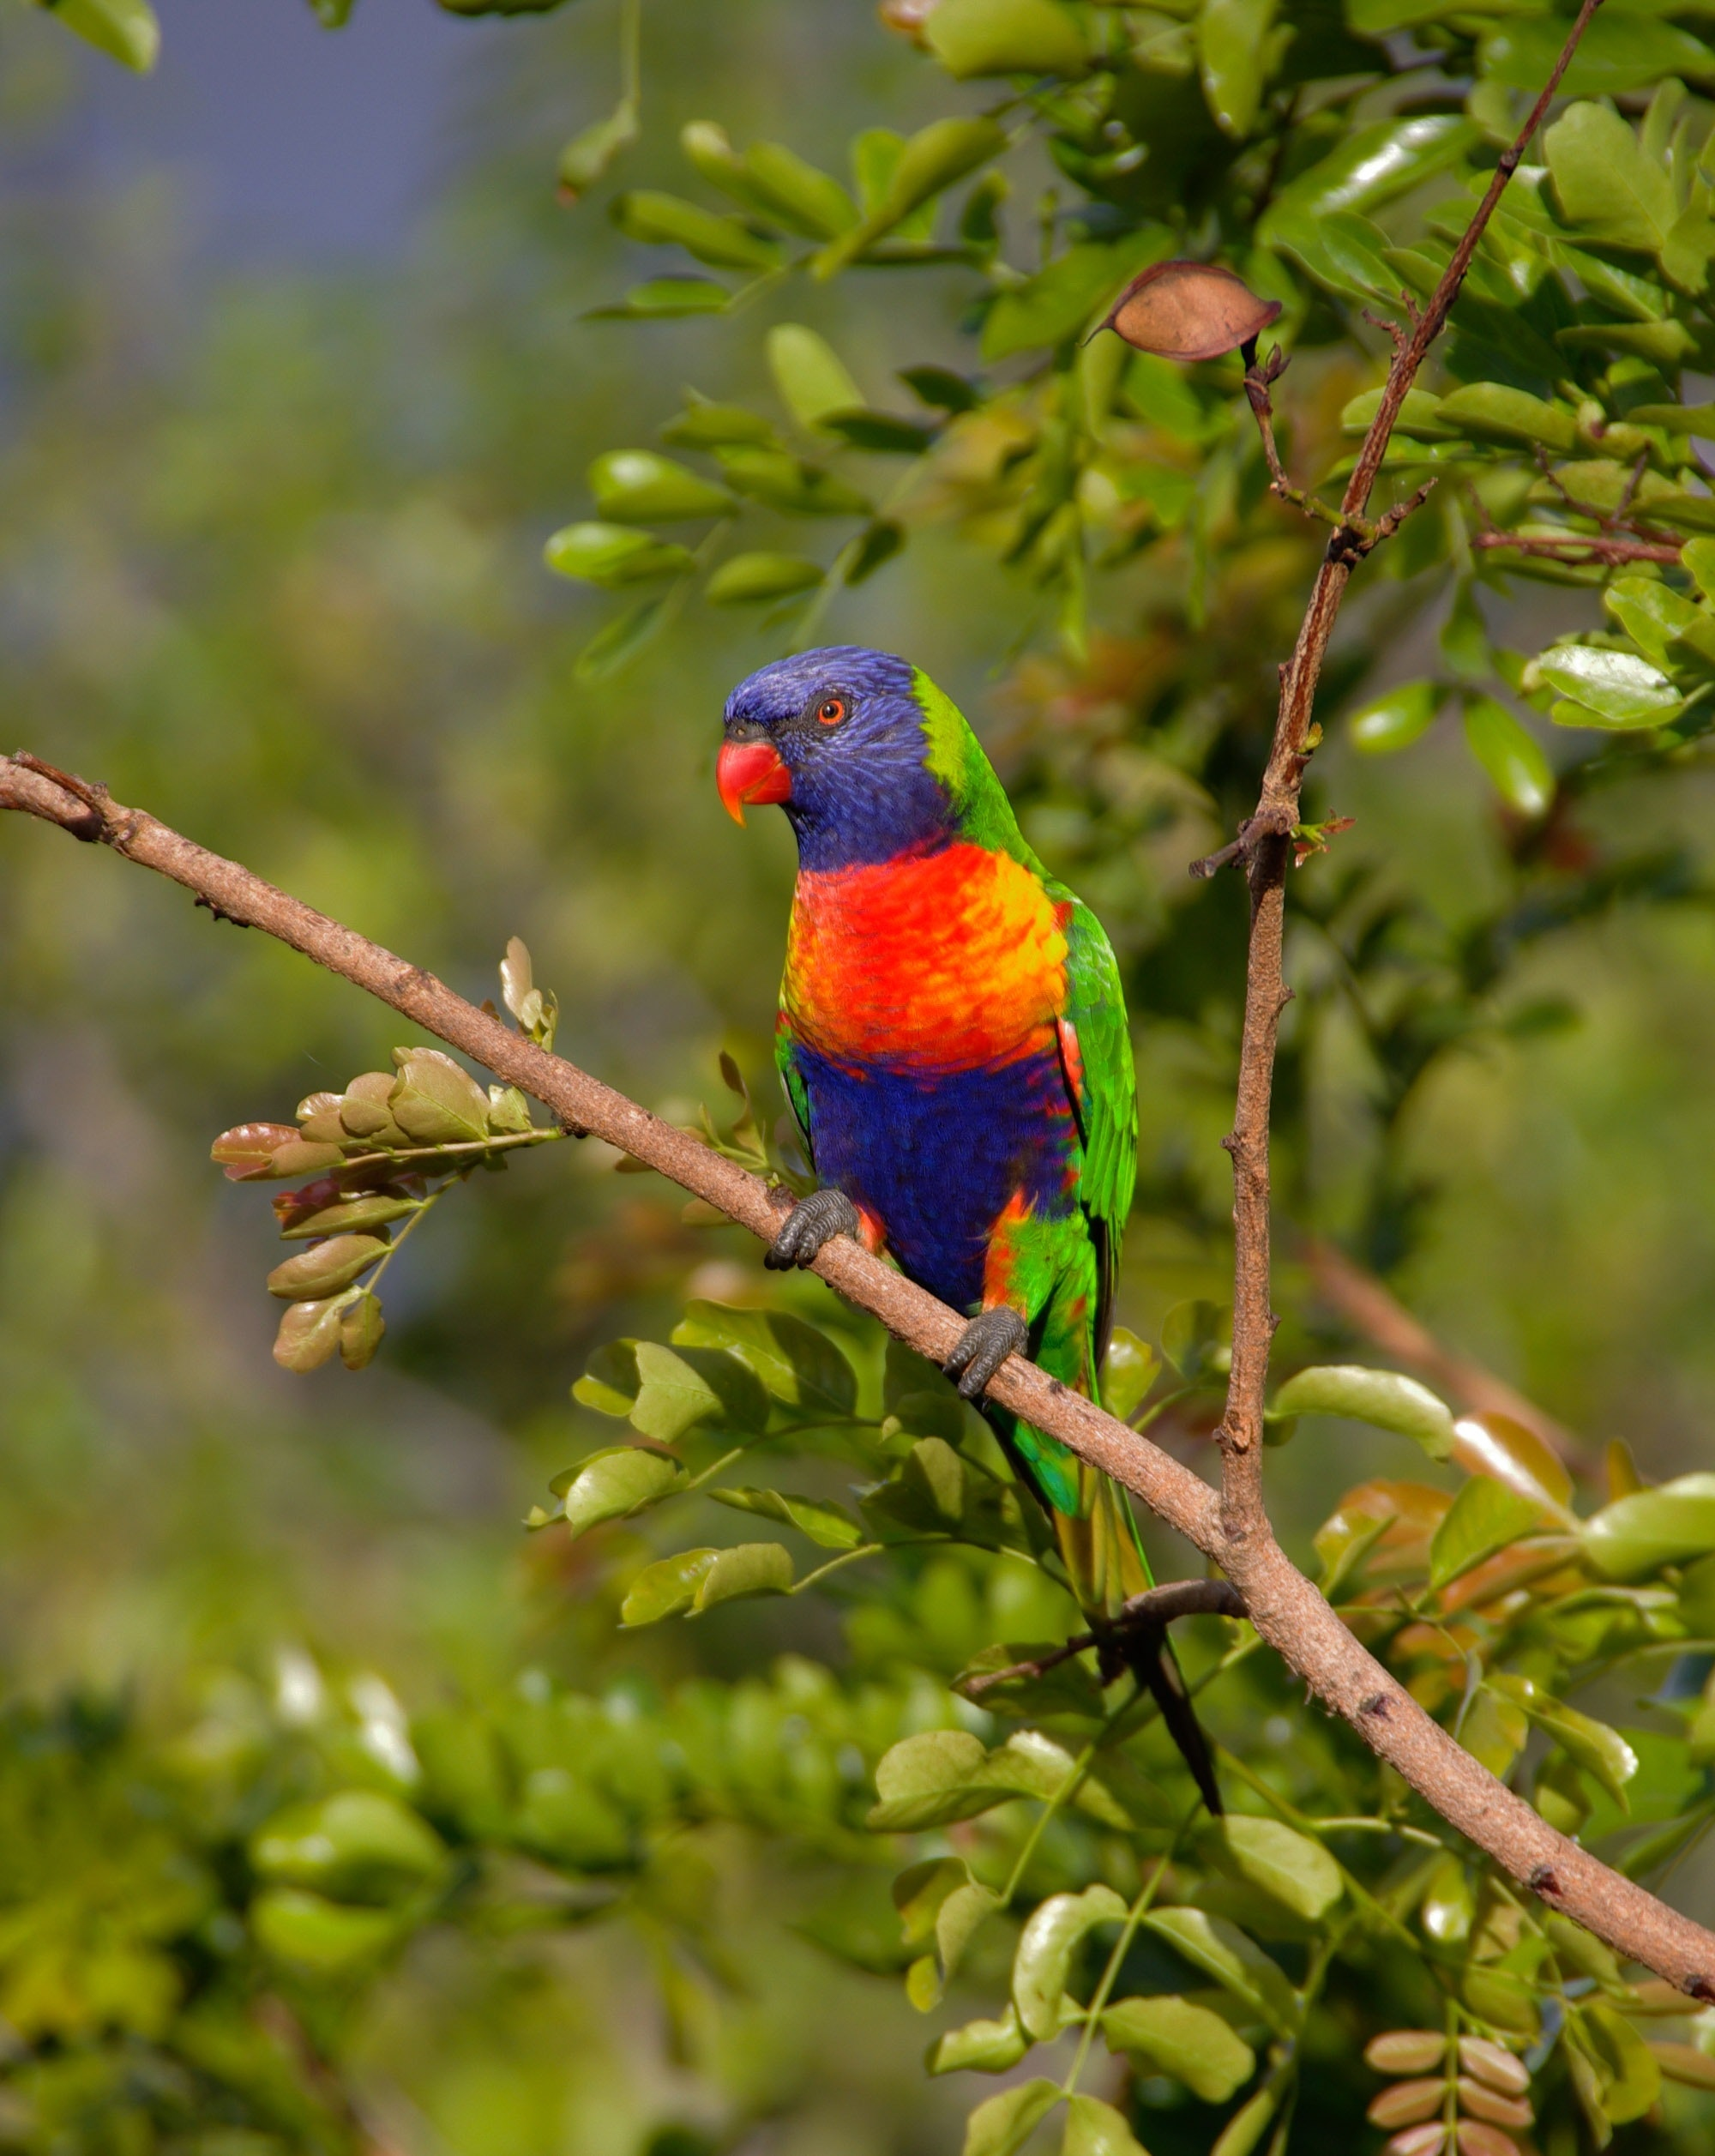 44 Colorful Parrot Photos 183 Pexels 183 Free Stock Photos